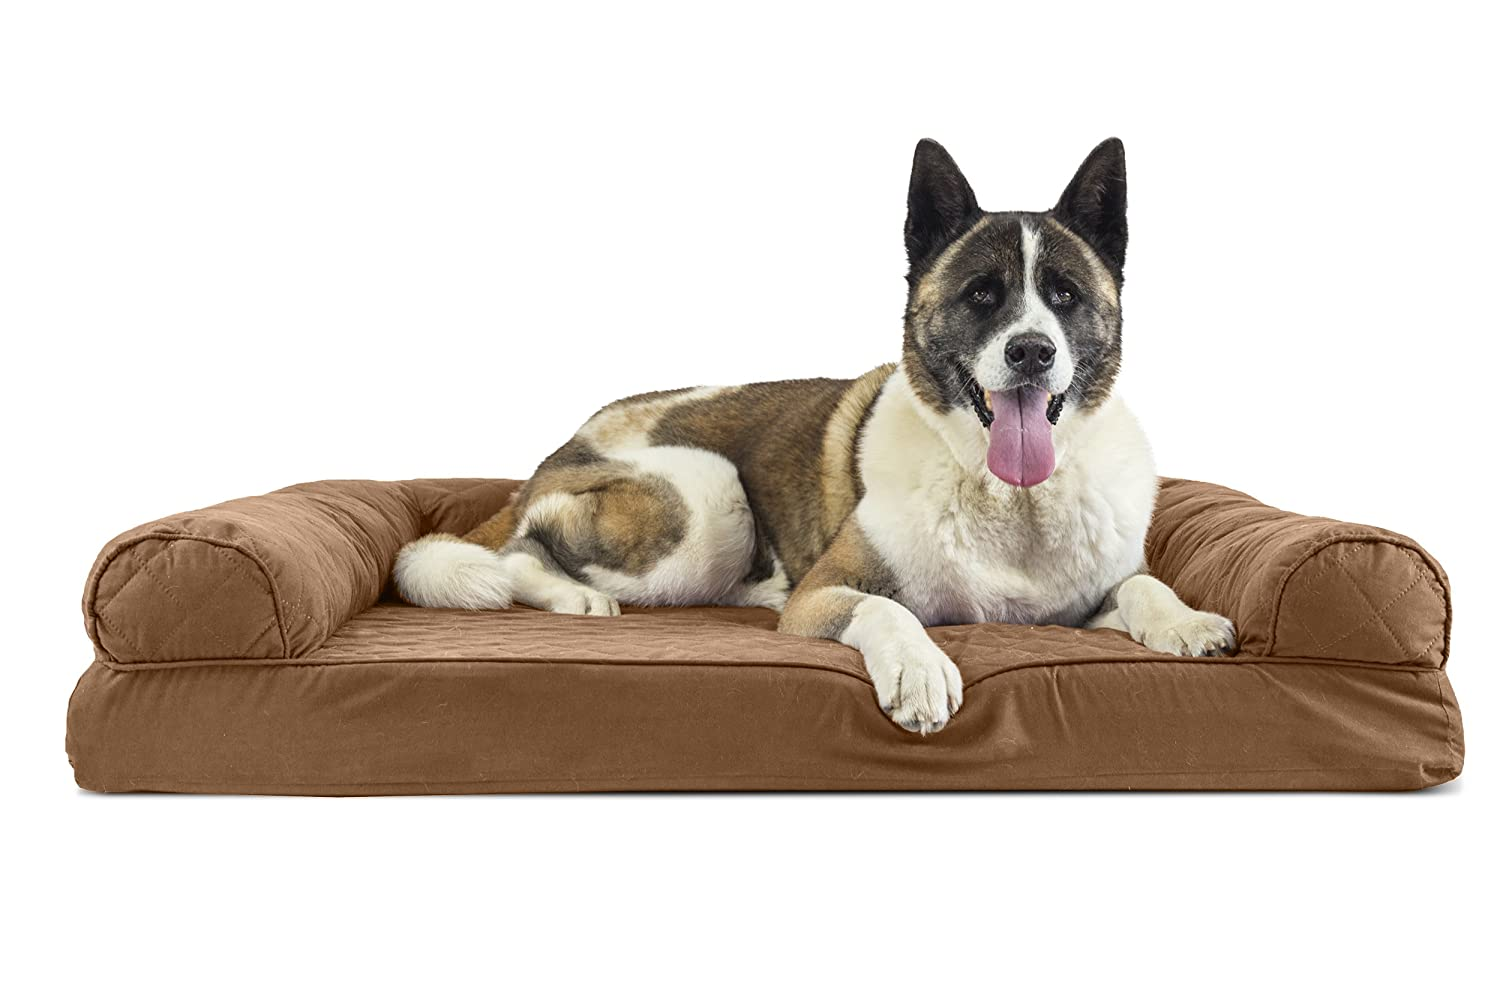 Furhaven Pet Dog Bed   Memory Foam Quilted Couch Sofa-Style Pet Bed for Dogs & Cats, Toasted Brown, Jumbo